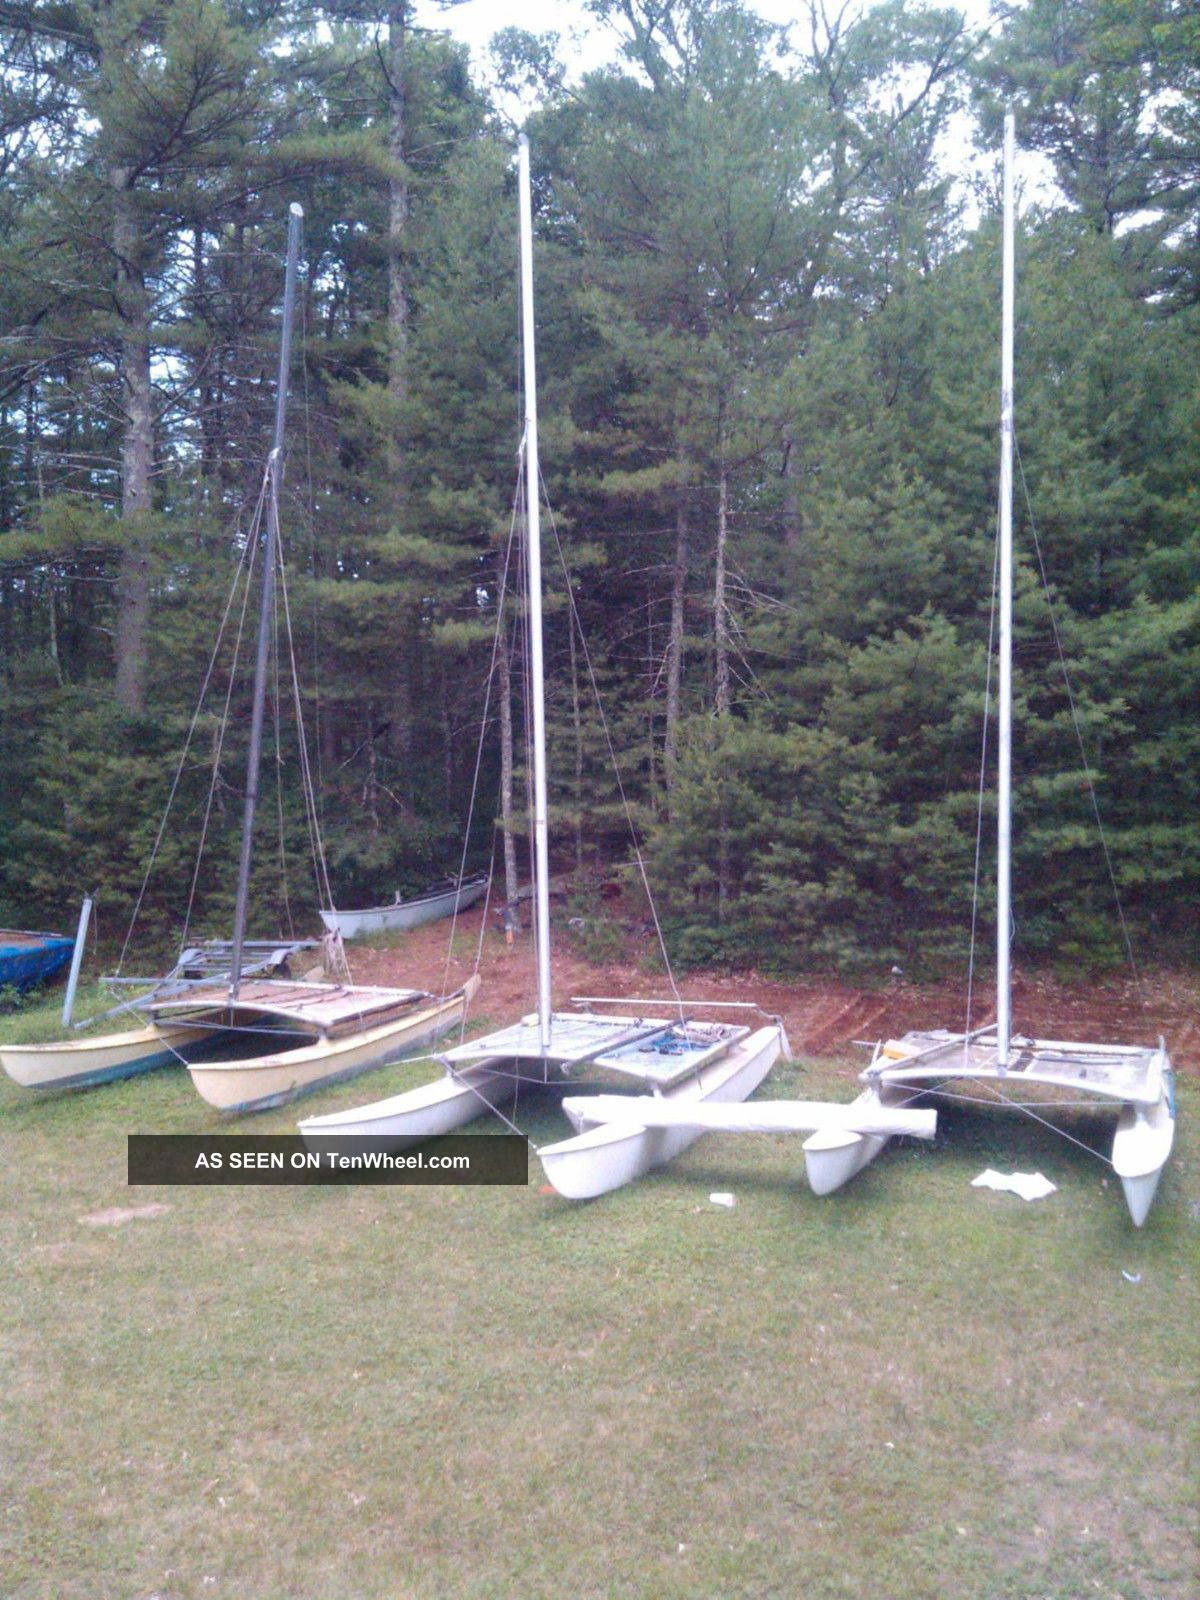 1982 Hobie Cat 16 Sailboats Under 20 feet photo